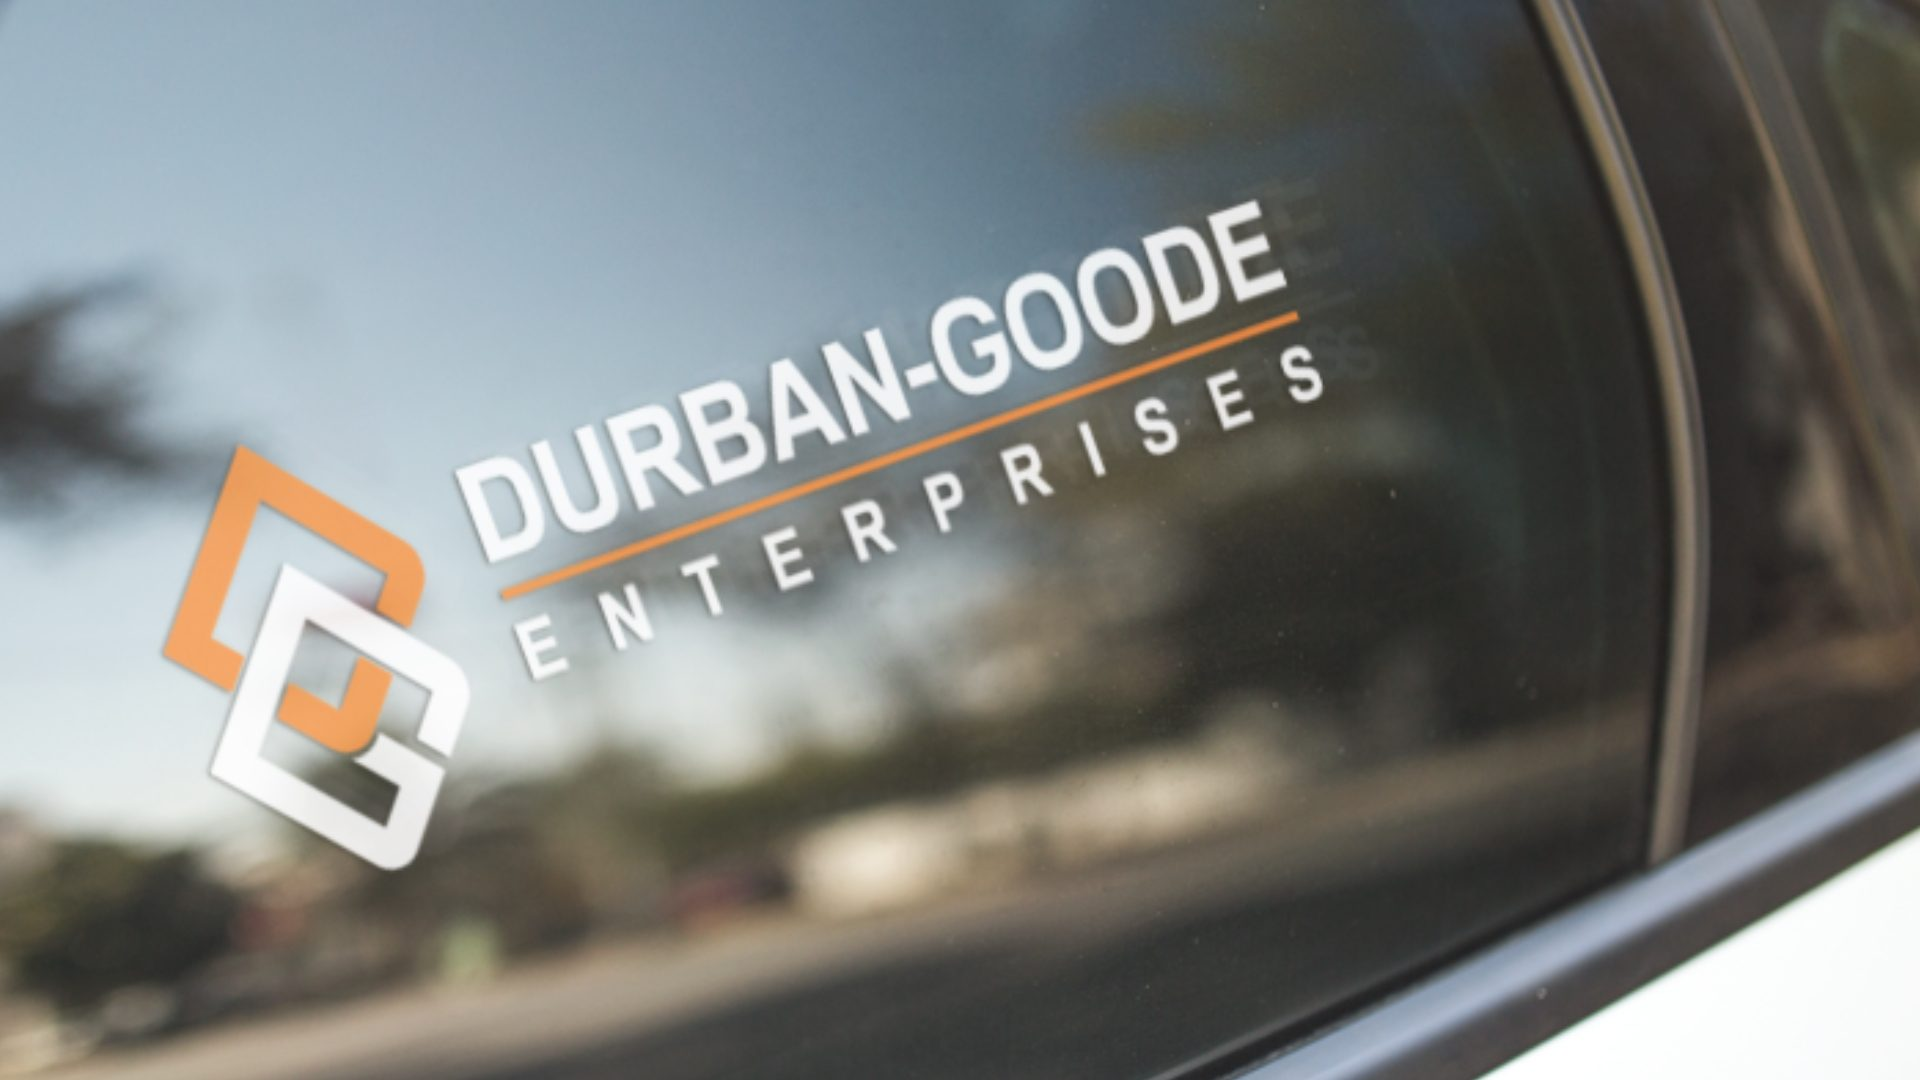 Durban-Goode Enterprises - 2021 Logo (6)